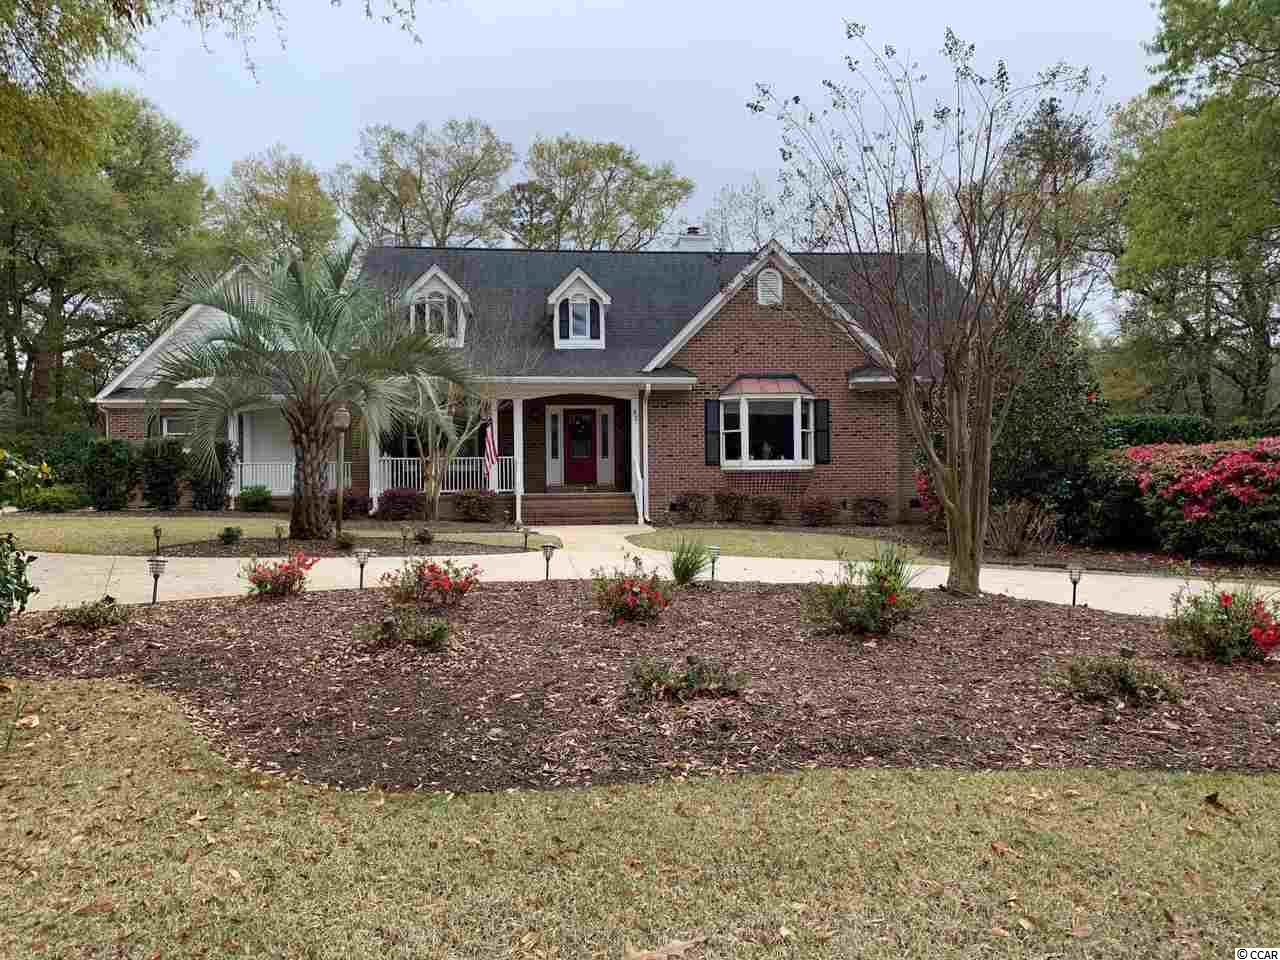 This spacious brick home is located on a quiet cul-de-sac in desirable & gated Willbrook Plantation.  This beautifully landscaped home has 4 bedrooms and 3.5 bathrooms with a separate study/office and large bonus room.  Situated on the 15th fairway of the Willbrook Plantation golf course, the outdoor porches are a wonderful place to enjoy morning coffee or an afternoon drink and watch the golfers go by!  The living spaces in this home are endless...a den that includes a gas fireplace, a huge Carolina/sunroom with a wet bar and beverage refrigerator that connects to a sun/screened porch are all on the first level. The large first floor master suite has a large walk in closet and gracious master bathroom with newly painted and updated cabinets.  The second floor has two bedrooms, a bathroom and contains a cozy den that includes a small kitchenette and separately controlled HVAC.  There is a second back stairway from the garage for privacy to the upstairs living quarters.  Perfect for a family with multi-generational living.  The kitchen boasts of granite countertops, stainless steel appliances, custom cabinets, a kitchen island with butcher block and a walk in pantry.  42 Warnock Way also features a dining room, breakfast room, home office, a 3 car garage and lots of storage space!  Willbrook Plantation offers a clubhouse and pool and access to Litchfield by the Sea amenities including the private beach!  Pawleys Island is located just a 70 mile drive for a day trip to historic Charleston, SC or 25 miles to the attractions of Myrtle Beach.